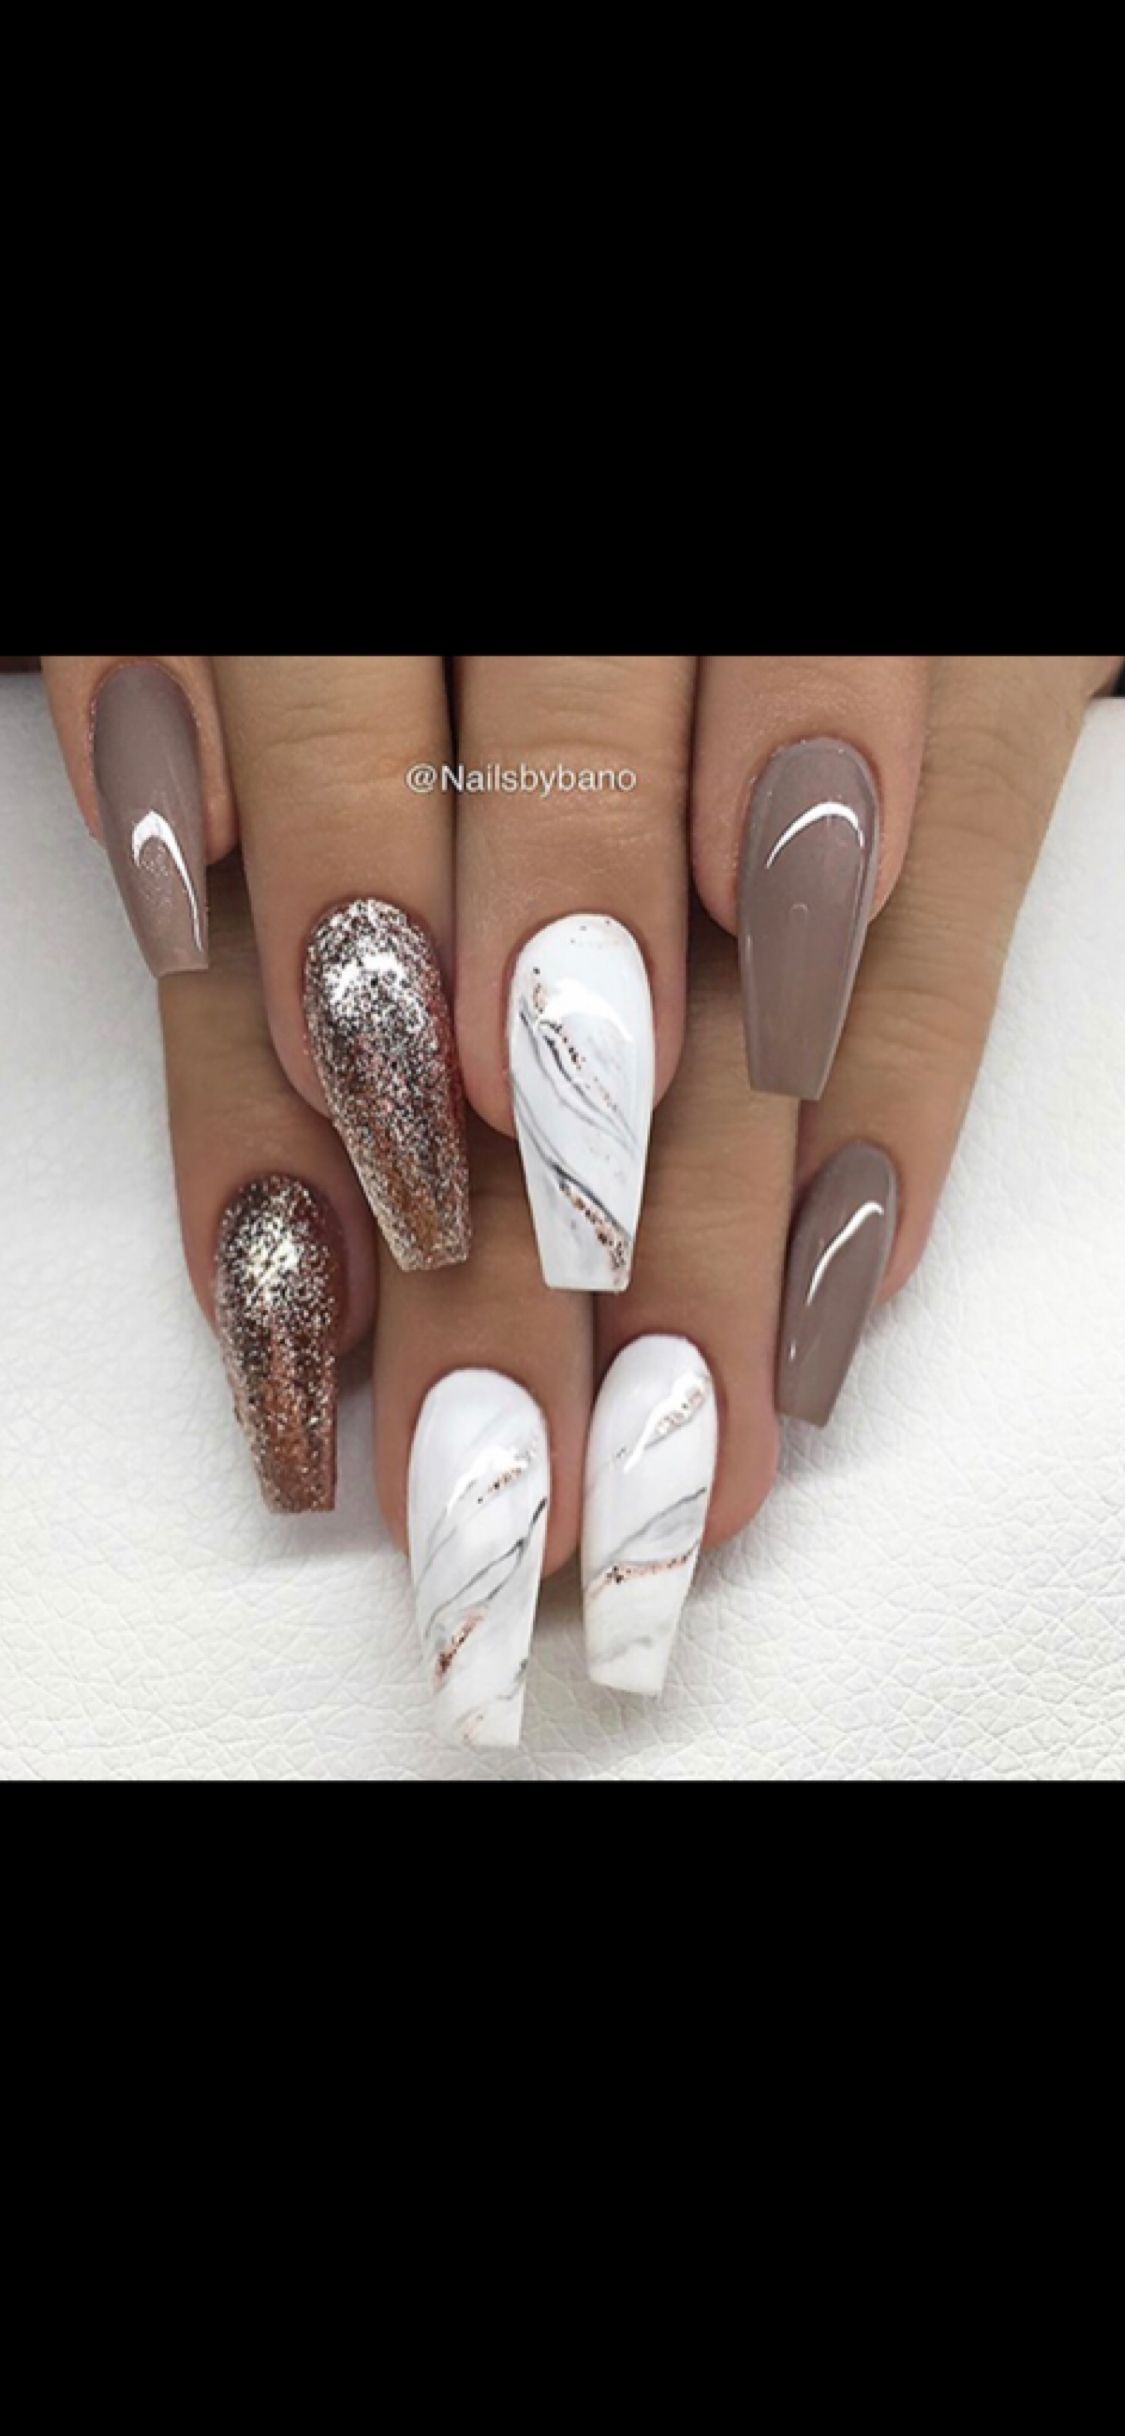 Pin by jacqueline on nails in pinterest